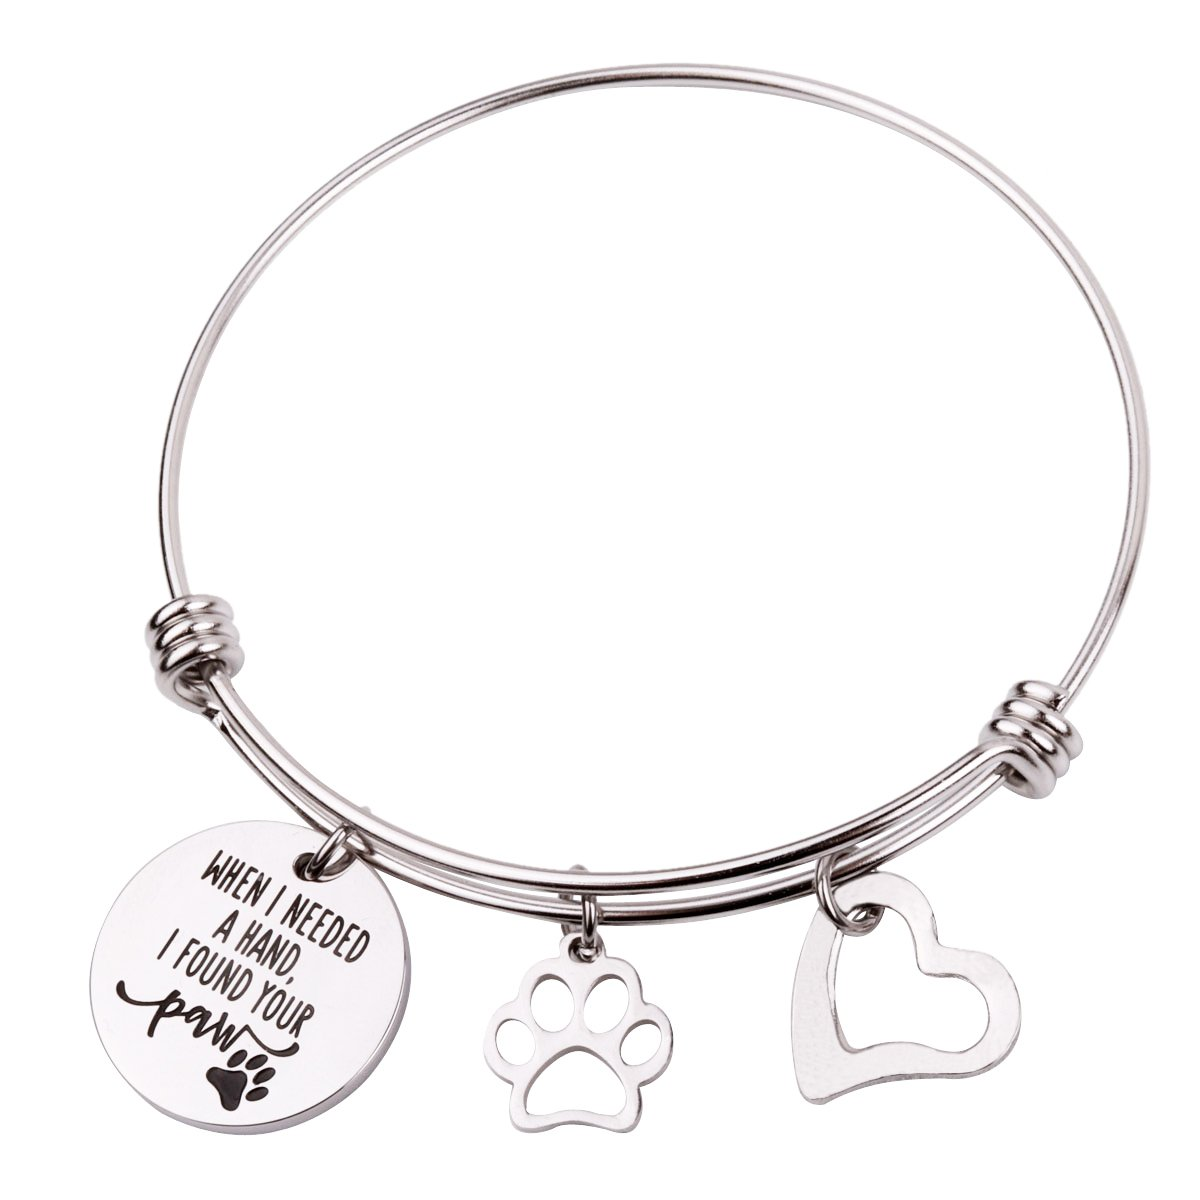 RUNXINTD Dog Lovers Bracelet When I Needed A Hand I Found Your Paw with Paw Print Charm Bracelet (When I Needed A Hand I Found Your Paw Bangle Bracelet)